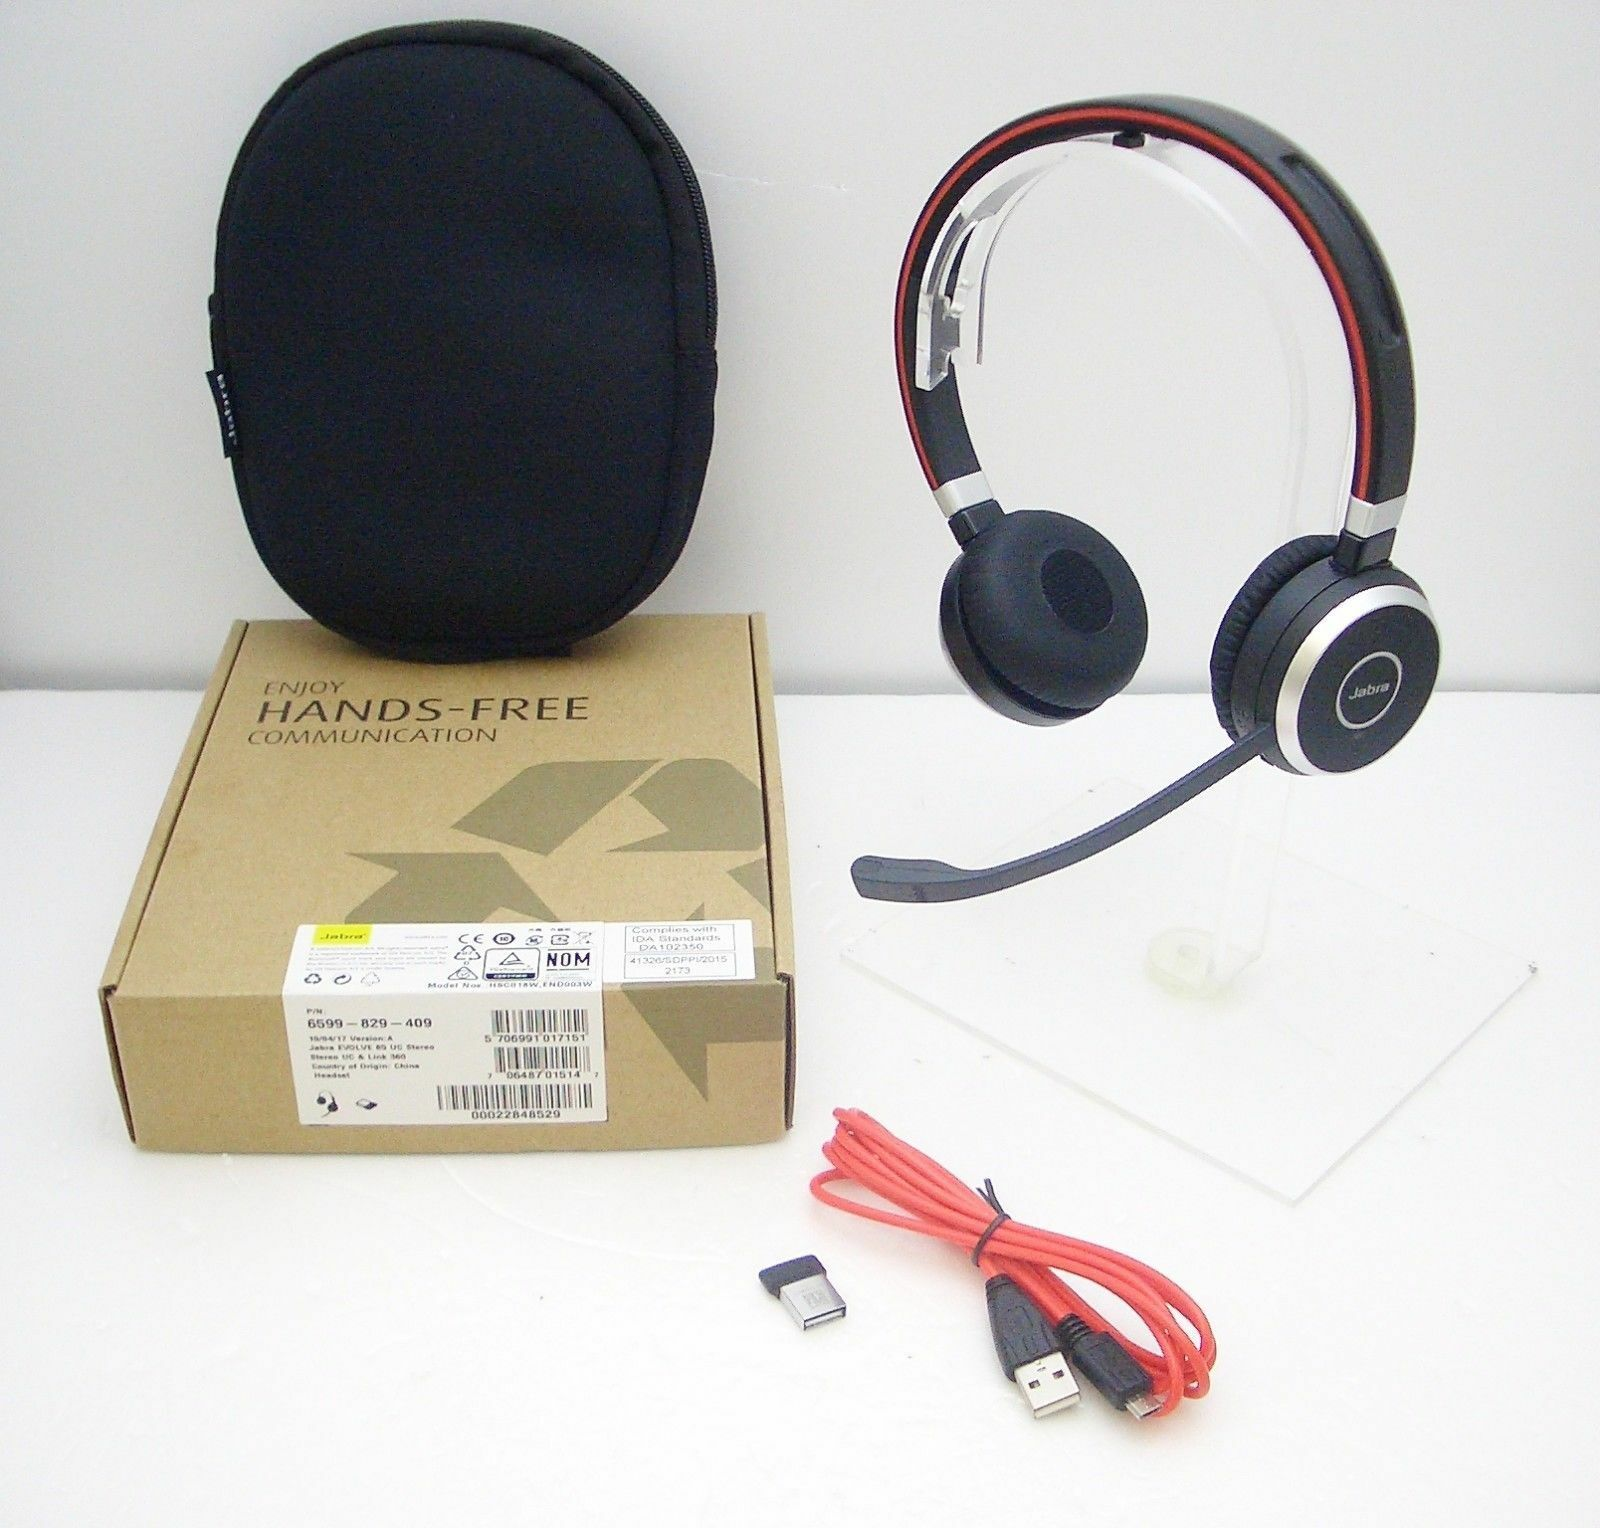 Music Headphones Includes Link 360 Jabra Evolve 65 Uc Stereo Wireless Bluetooth Headset U S Retail Packaging